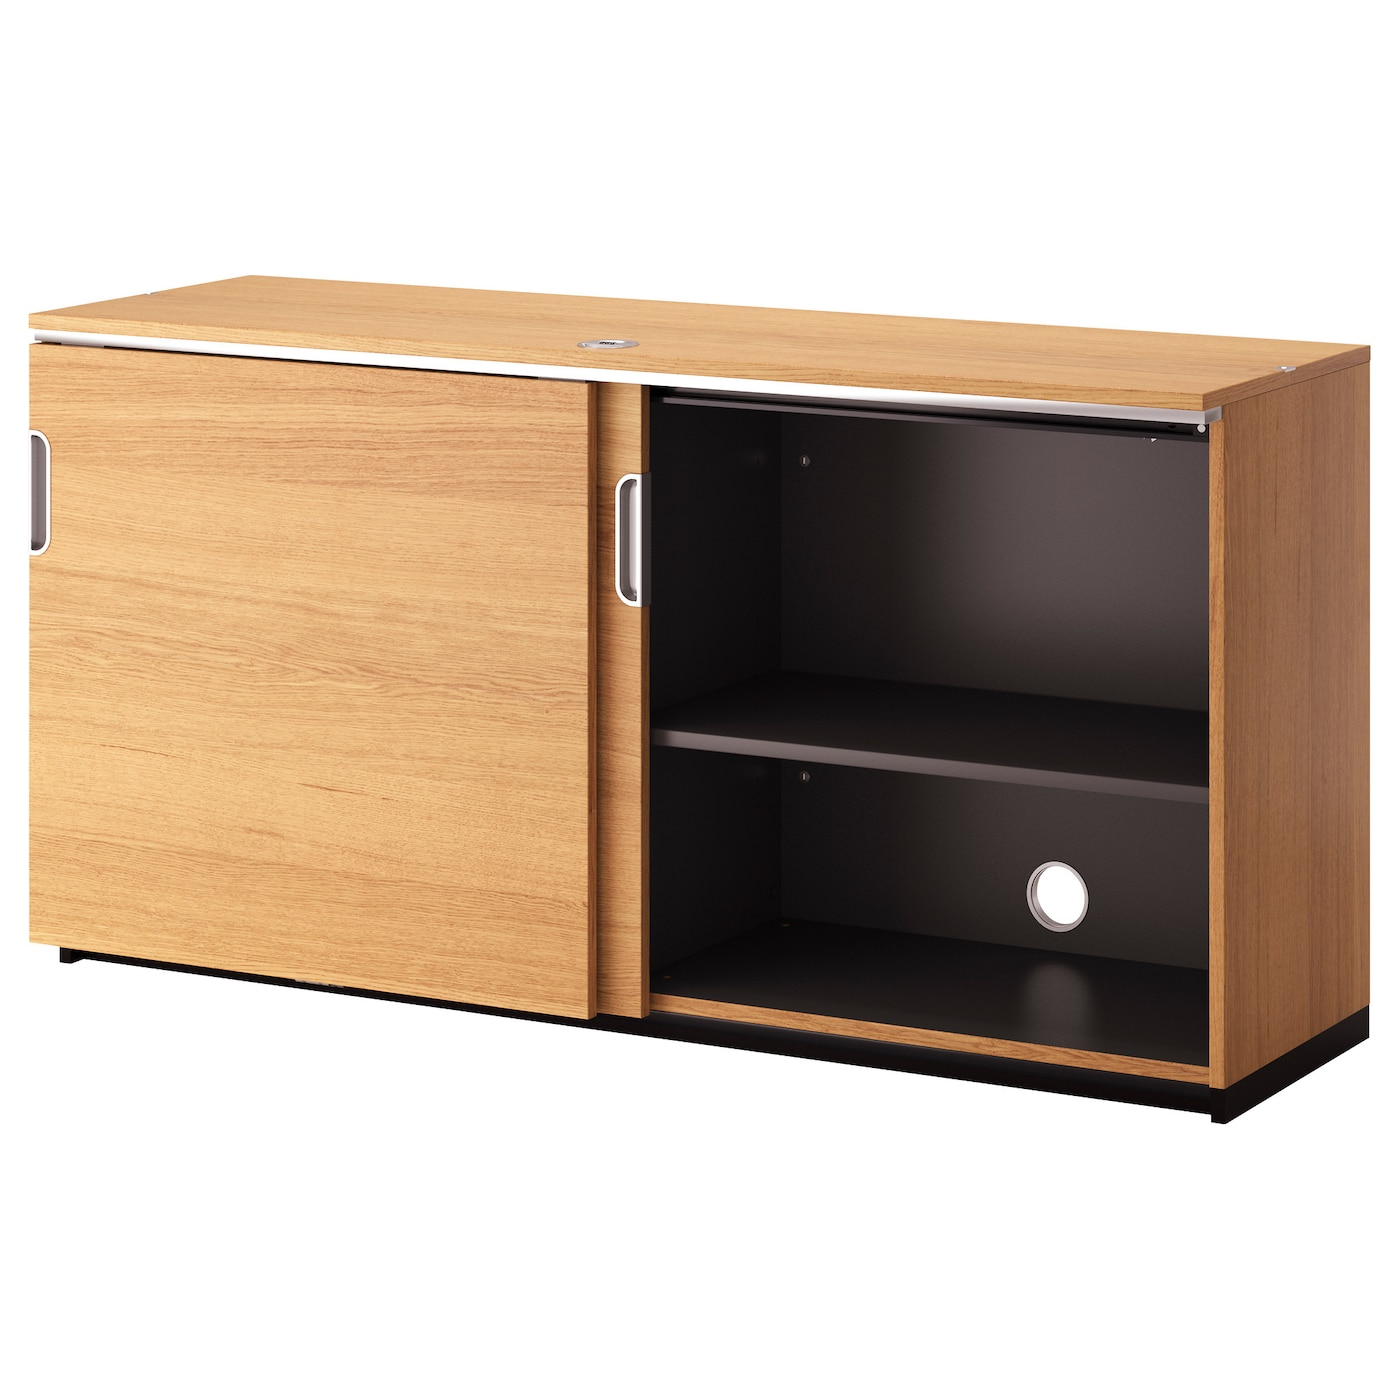 galant cabinet with sliding doors oak veneer 160 x 80 cm ikea. Black Bedroom Furniture Sets. Home Design Ideas